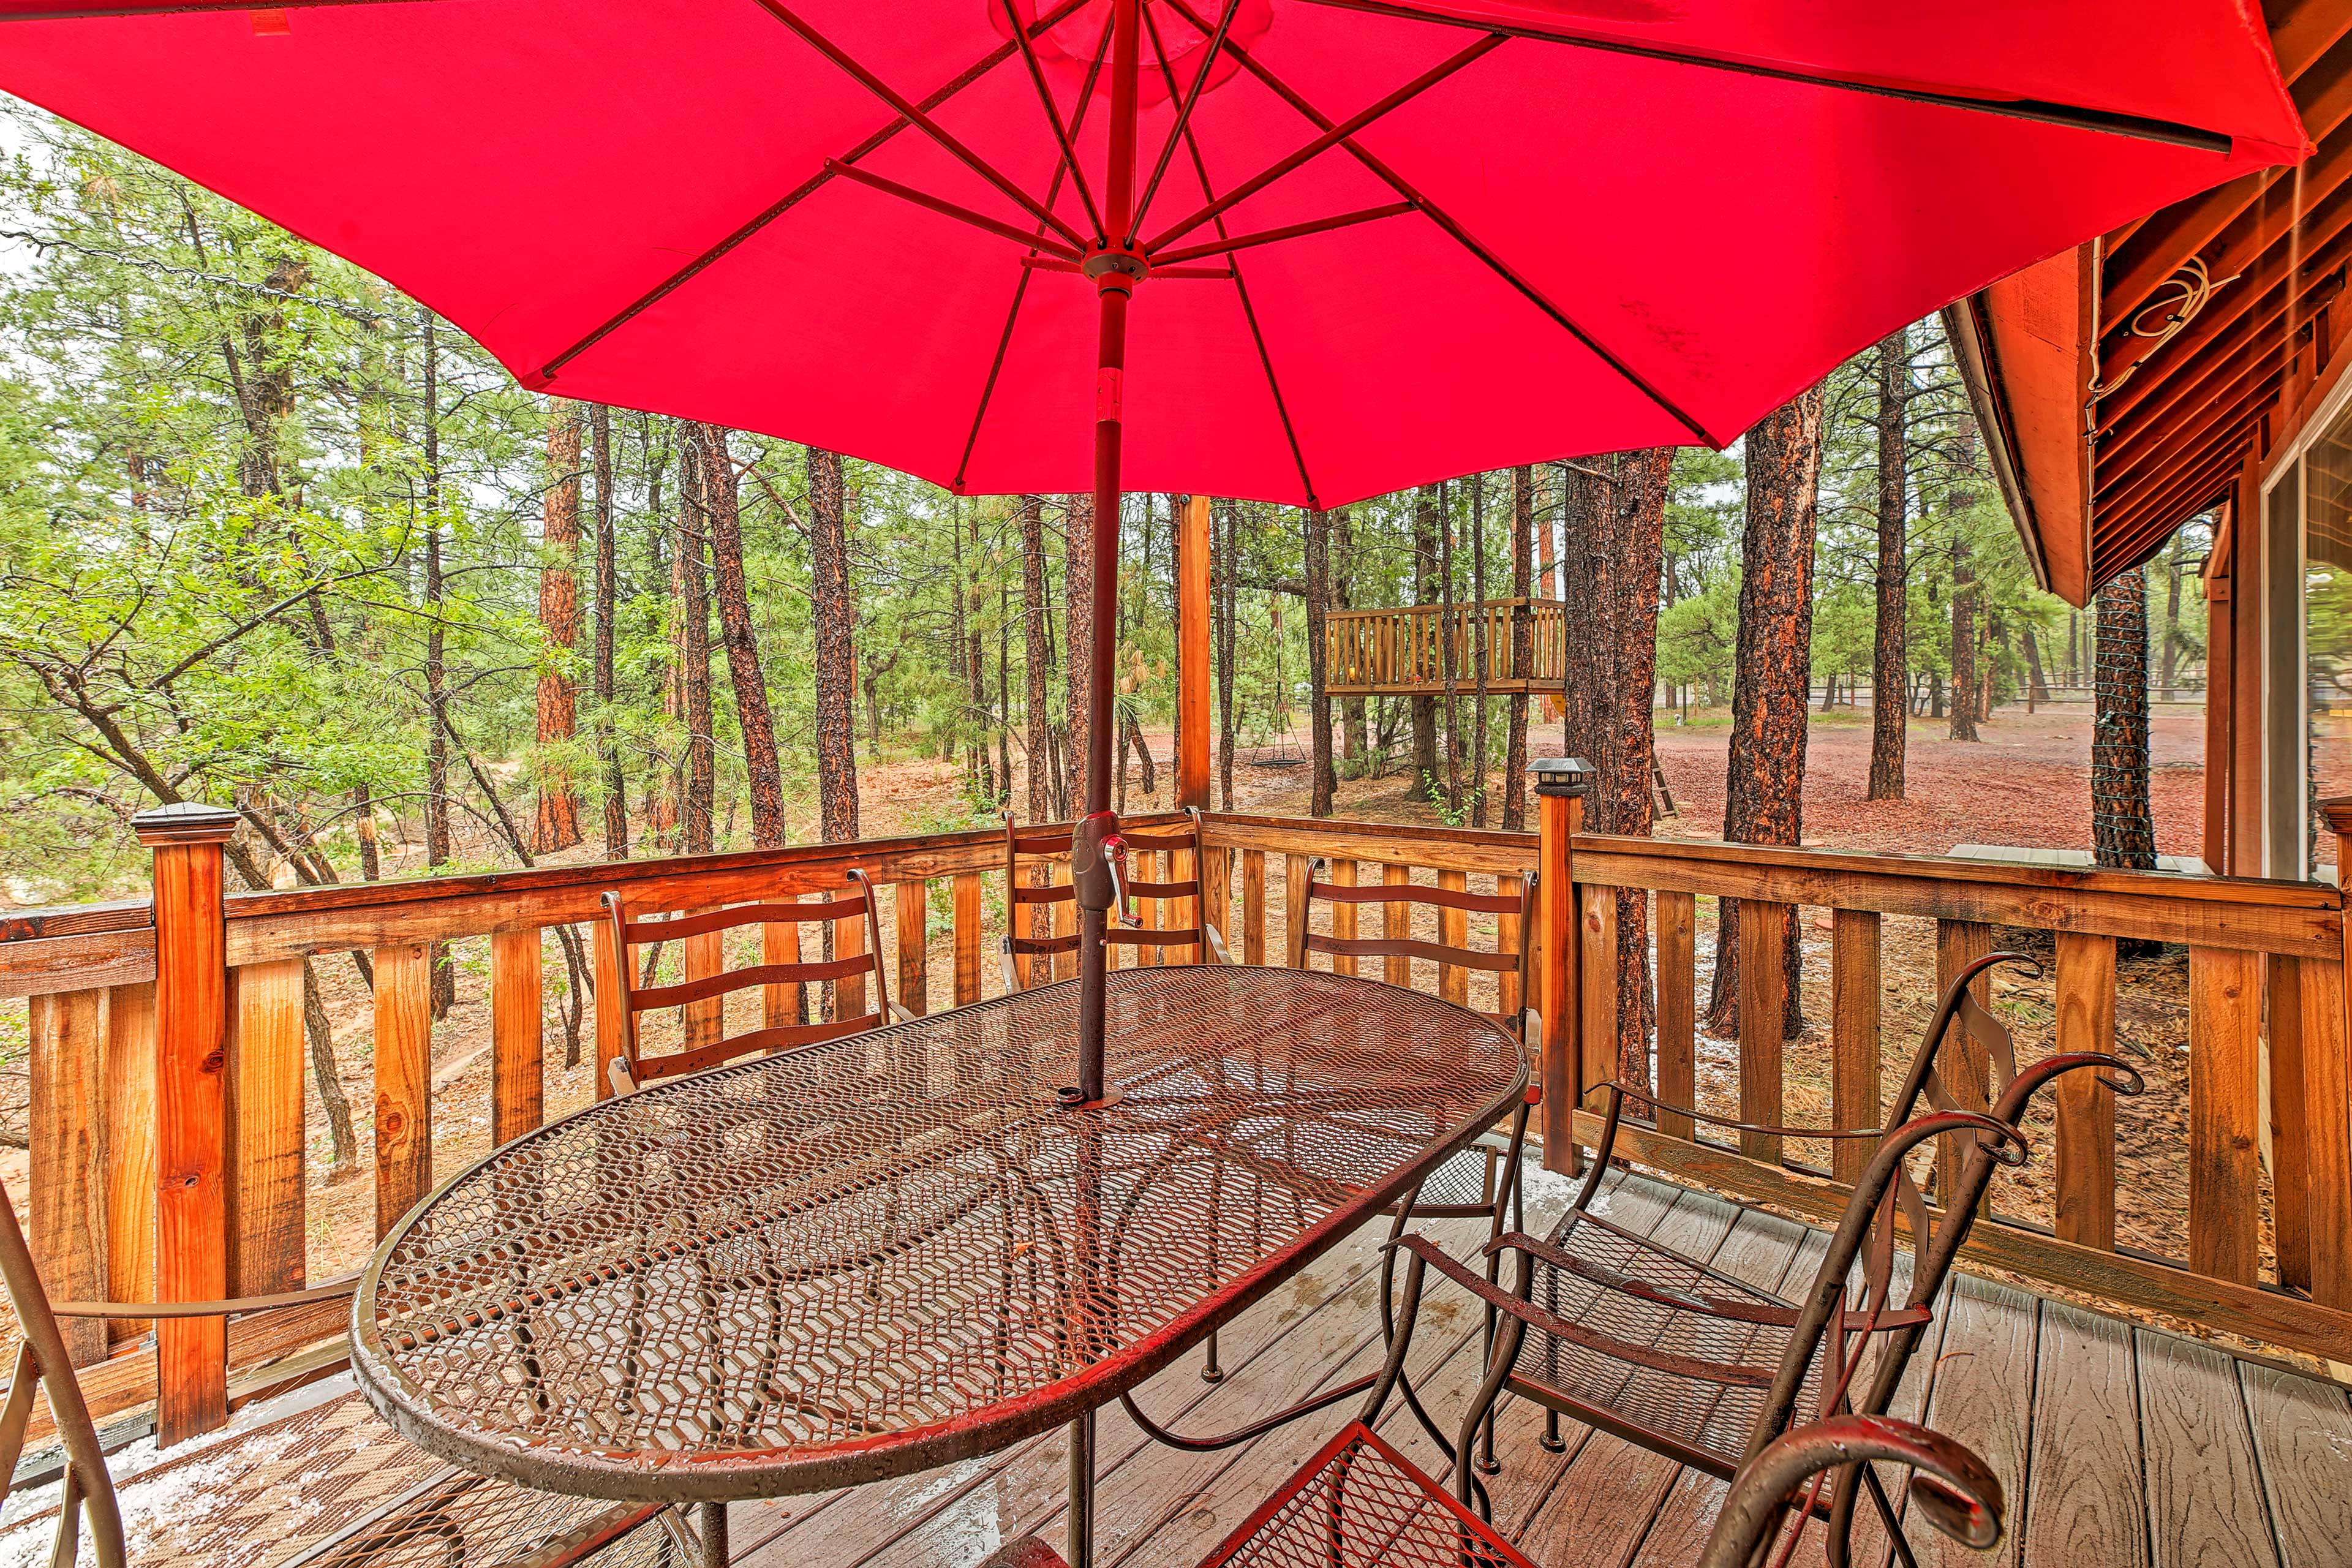 Deck | Outdoor Dining Table